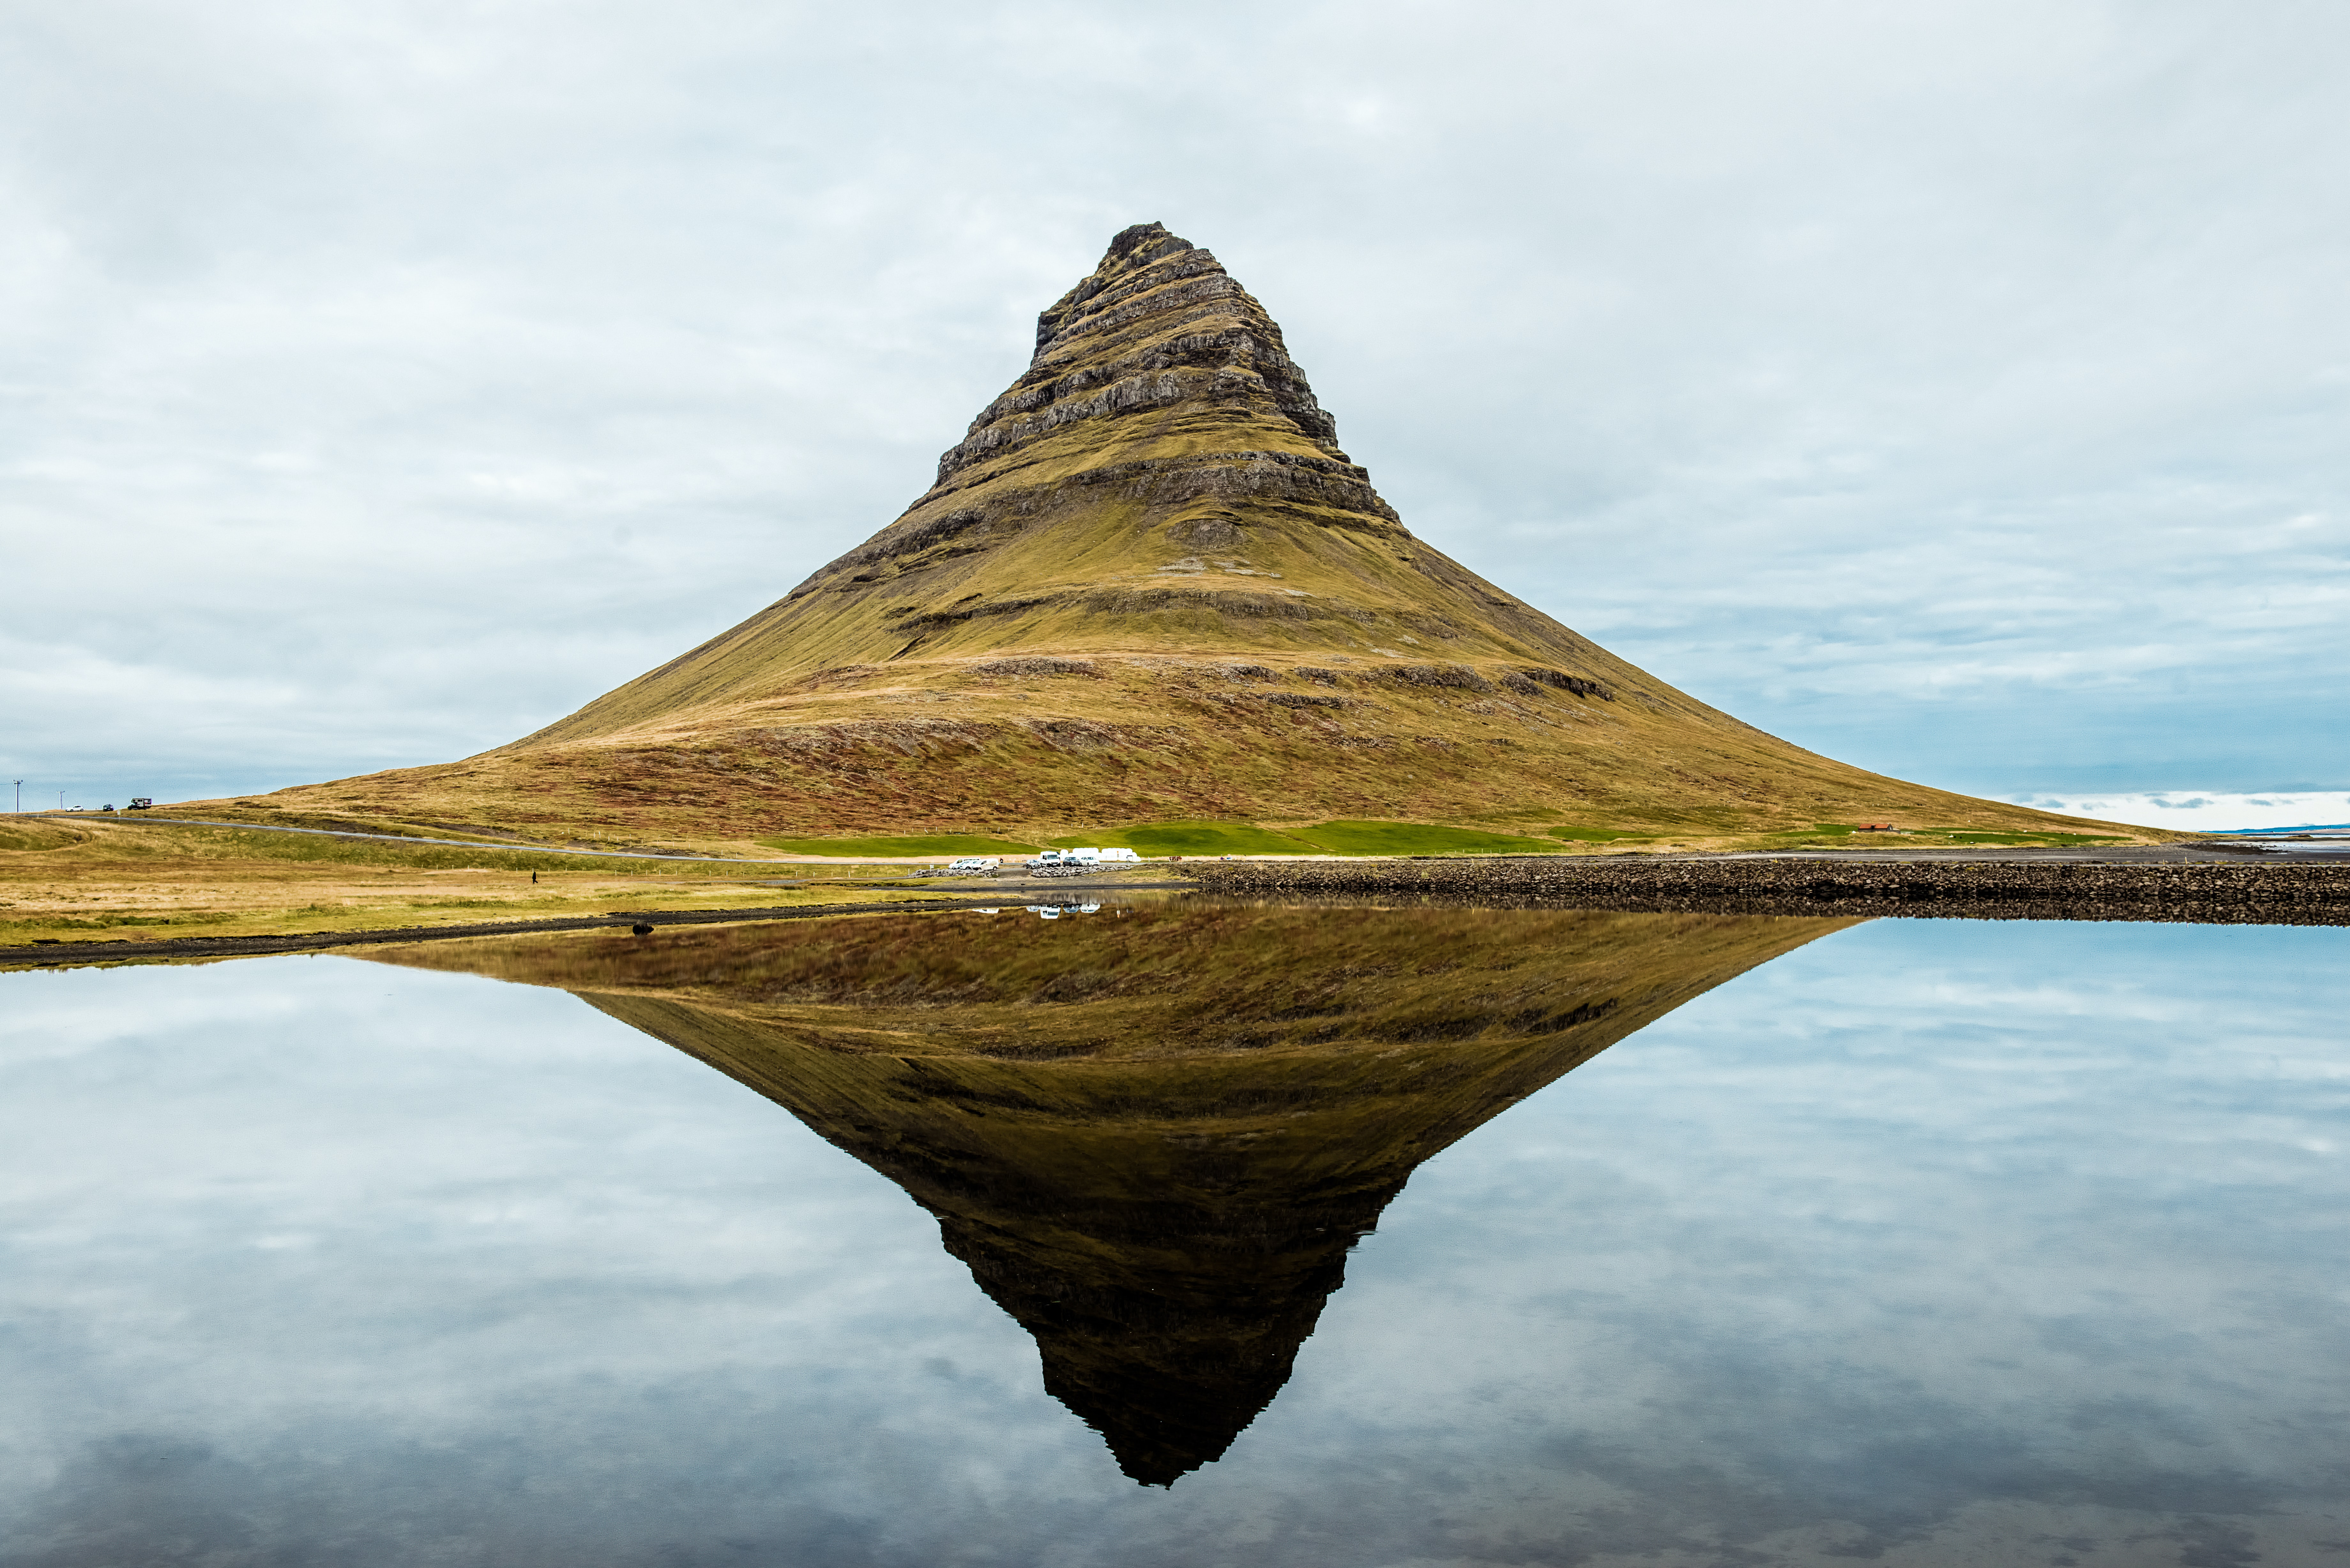 A free-standing mountain reflected in the clear surface of a lake